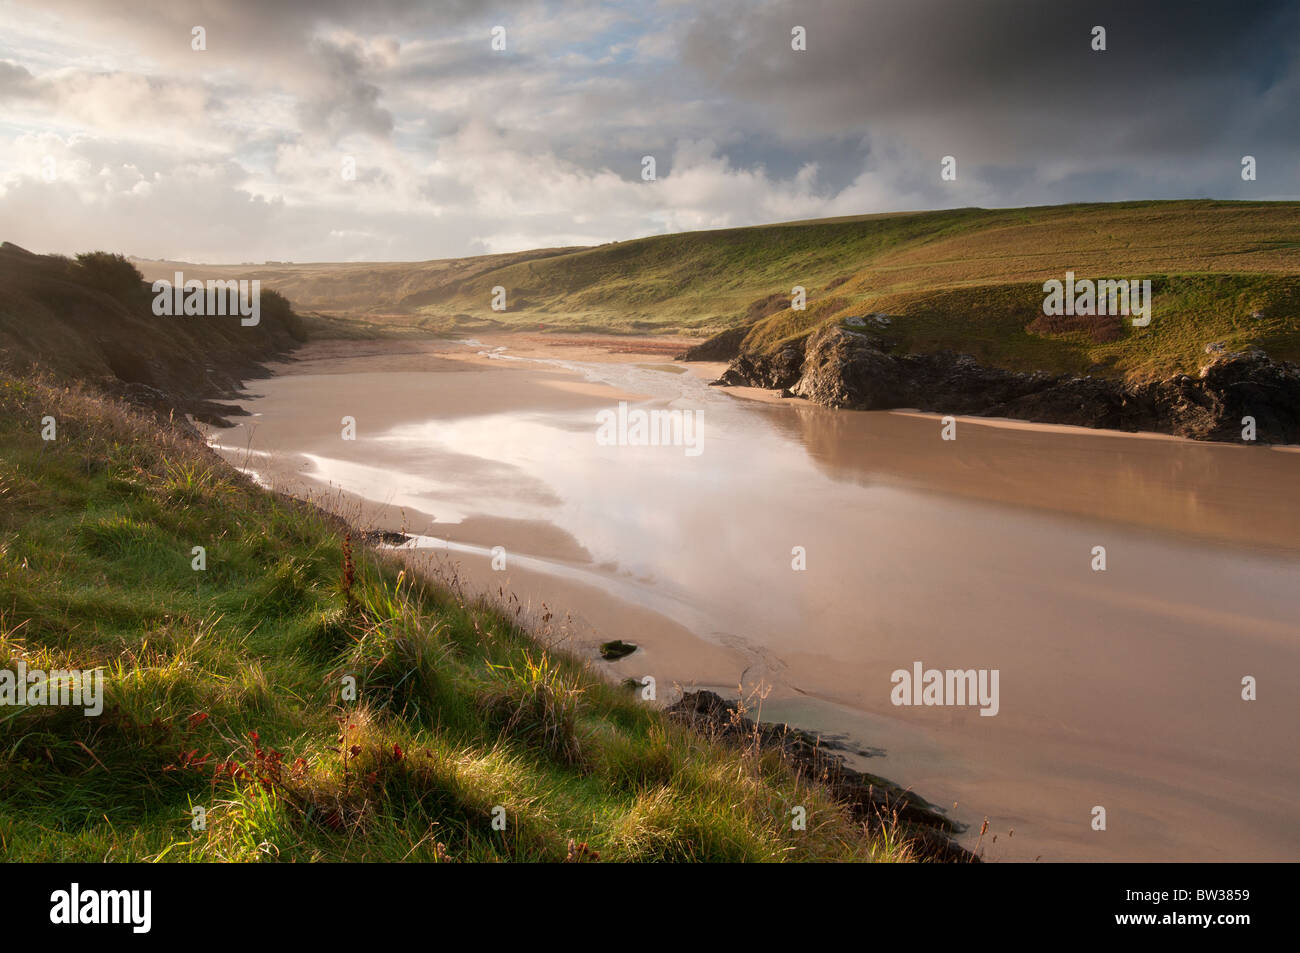 A deserted beach at Porth (Polly) Joke on the North Cornish coast between Crantock and Holywell Bay - Stock Image